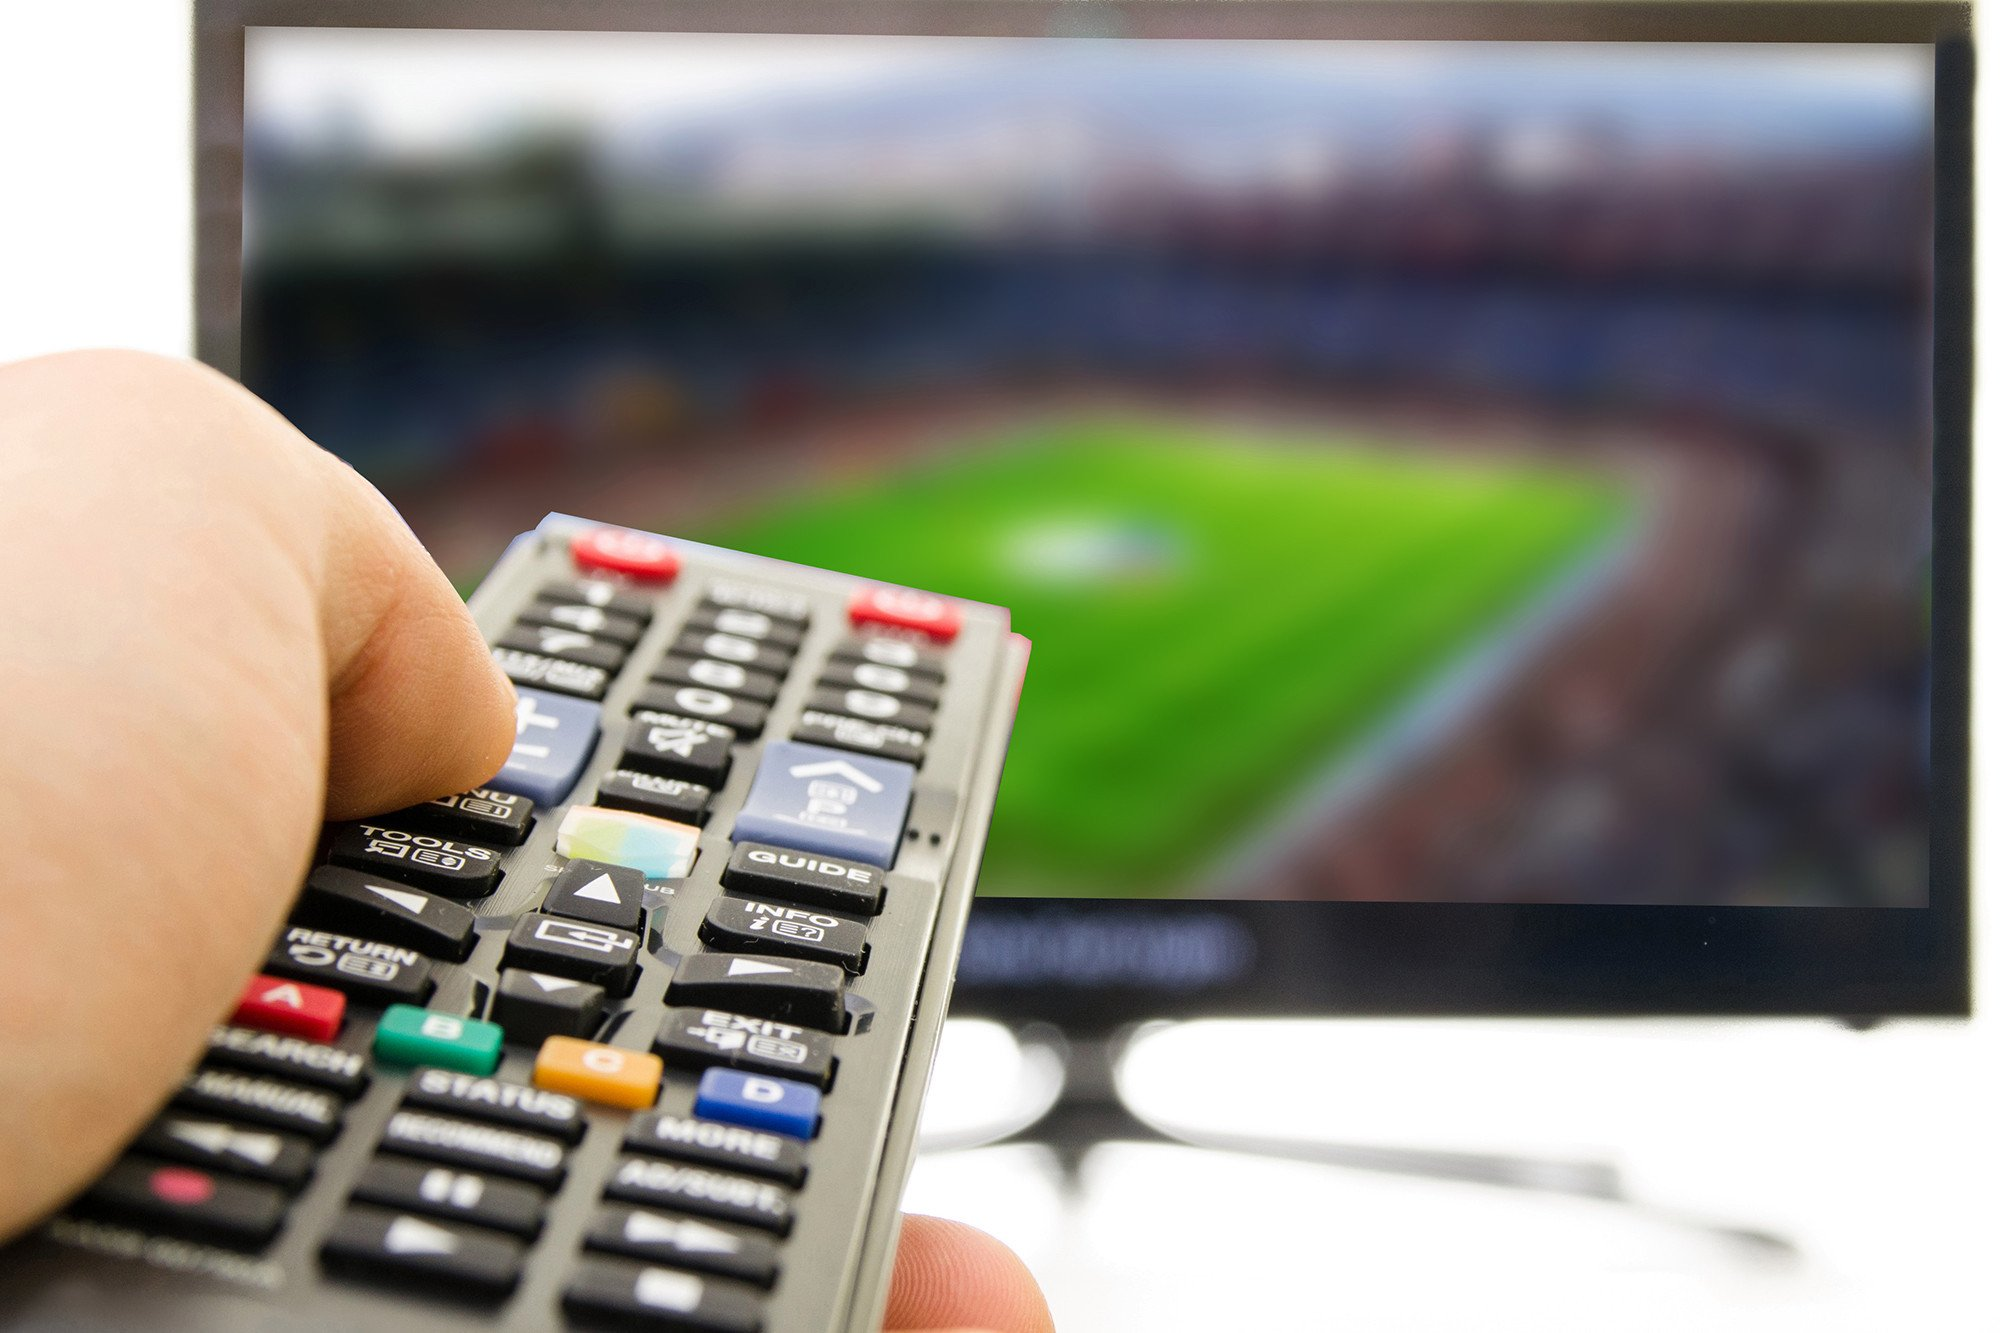 Cable prices have been too damn high for nearly 20 years